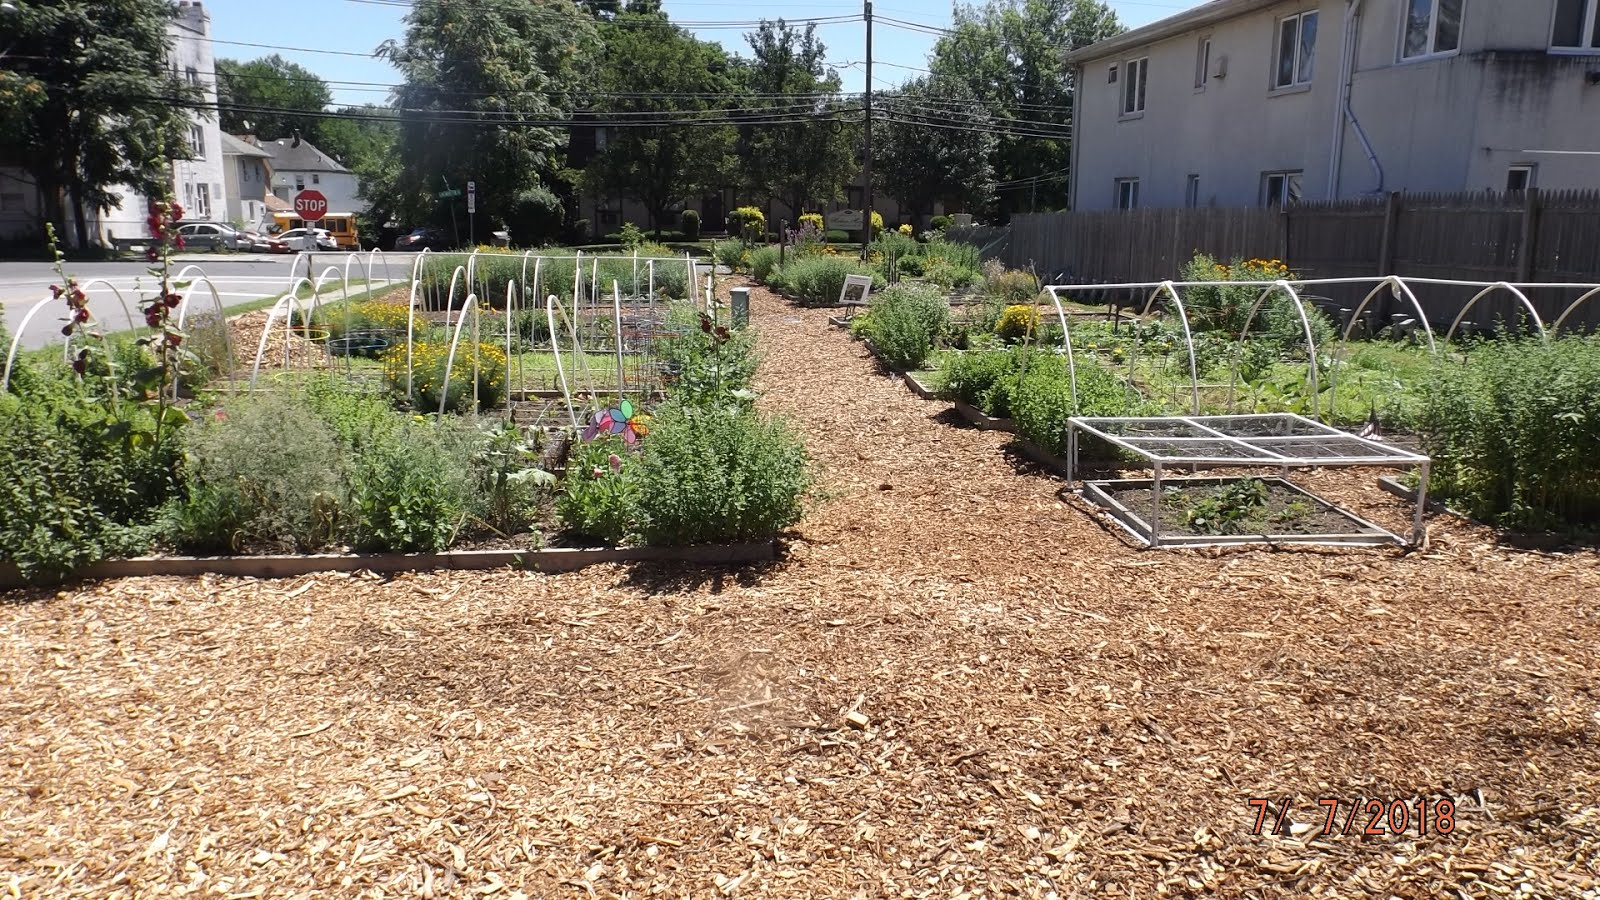 The Louie Bacoat Historic Community Garden